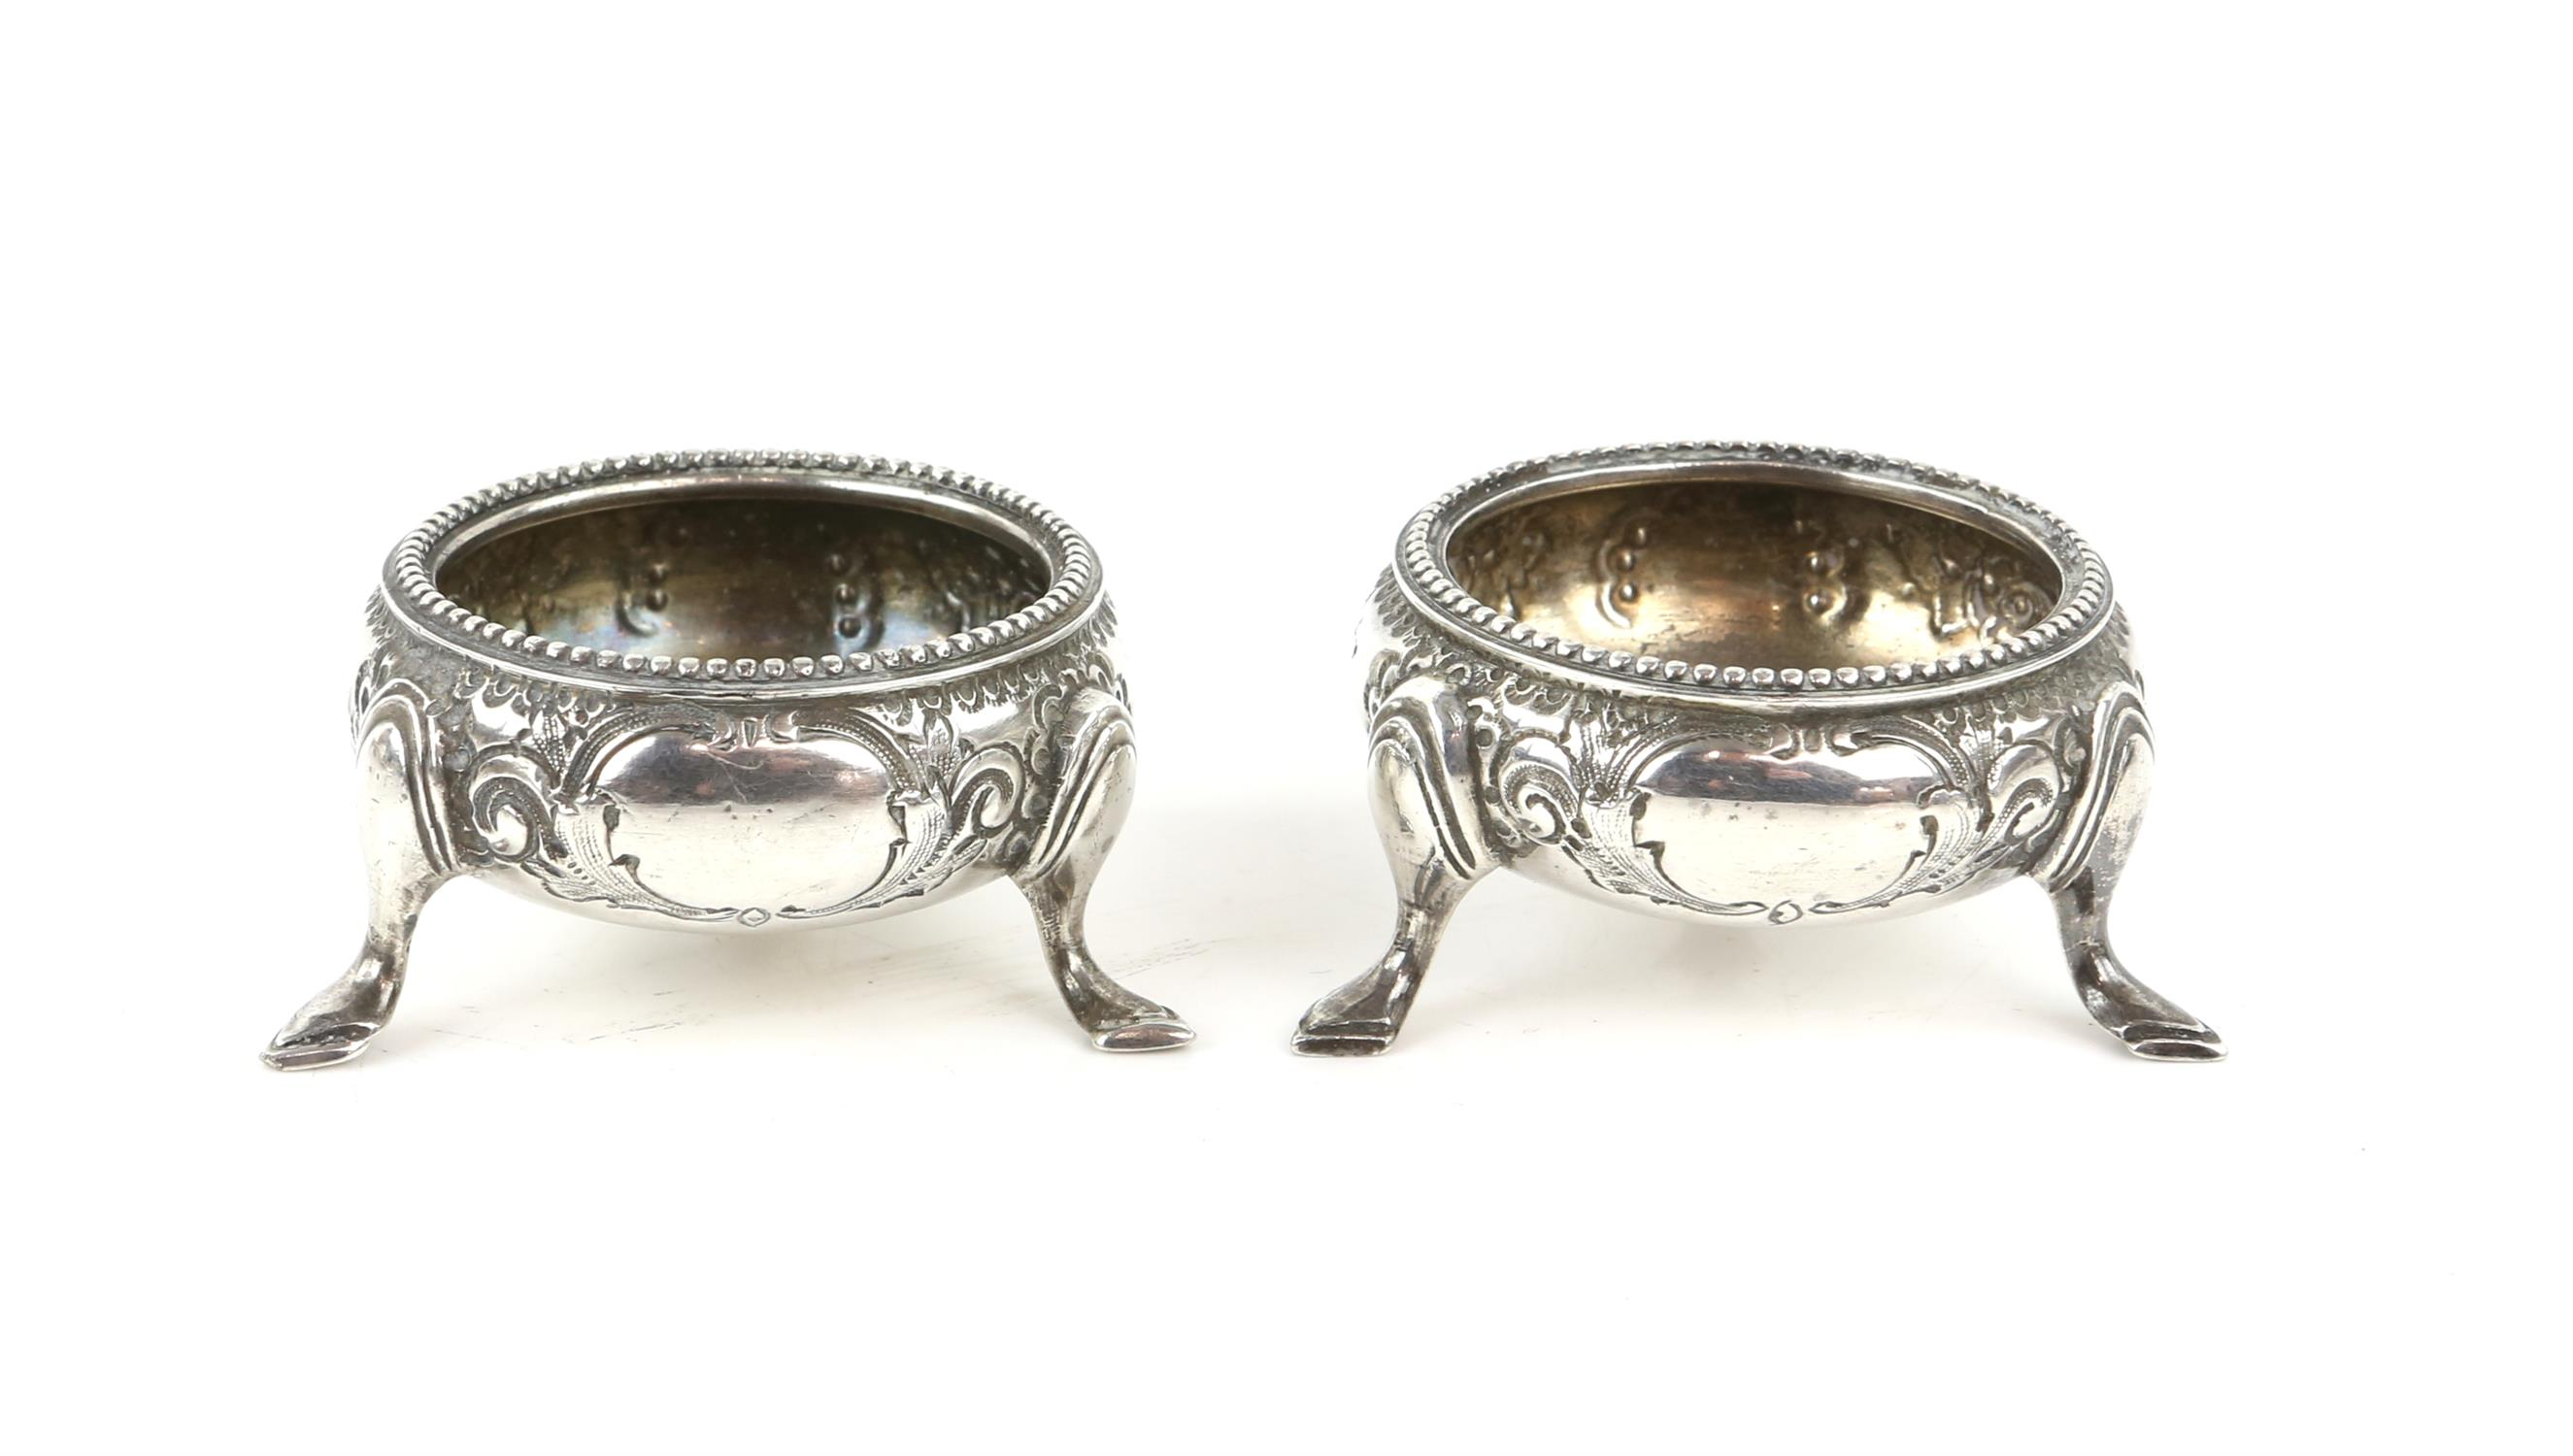 American sterling silver pepperette with floral embossed ddecoration, marked Sterling, - Image 6 of 18